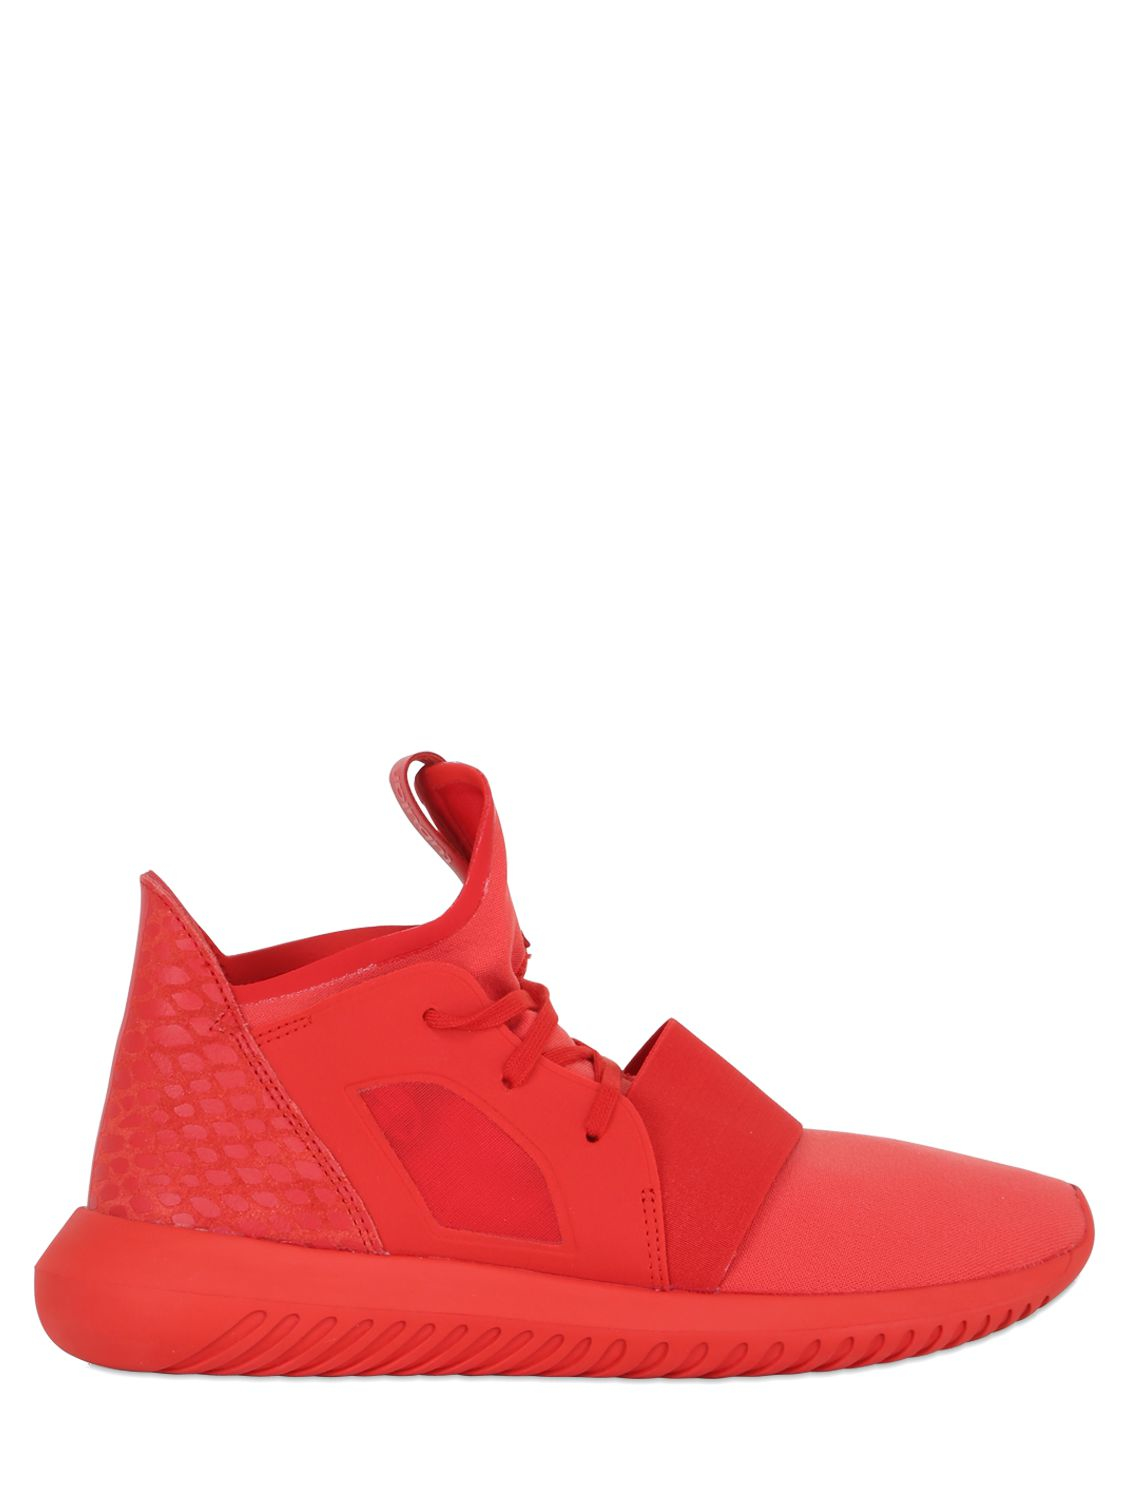 Originals Tubular Defiant Kickslove Nike Puma & Adidas trainers for